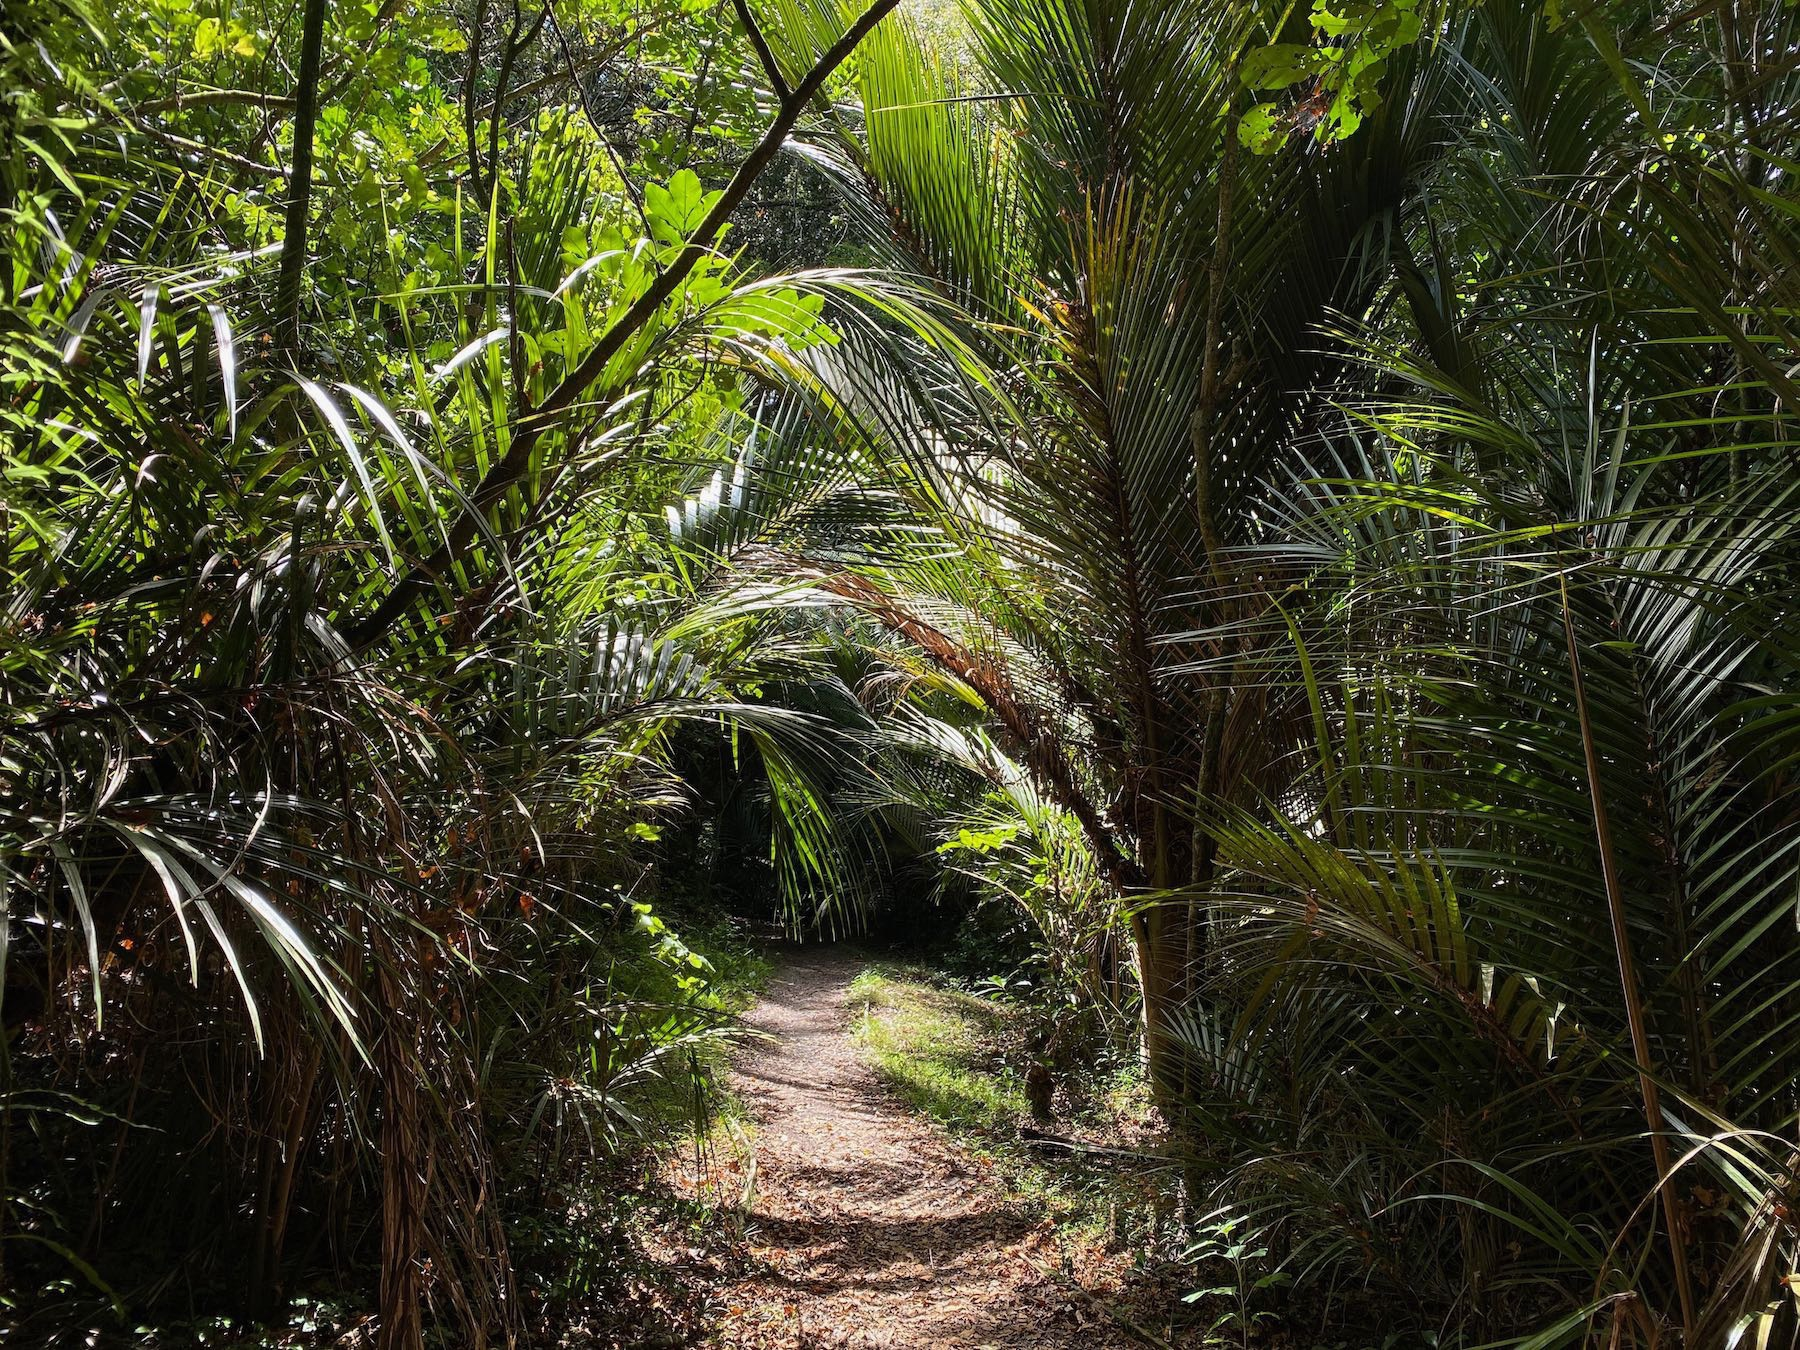 A sunlit part of the track under nikau palms.